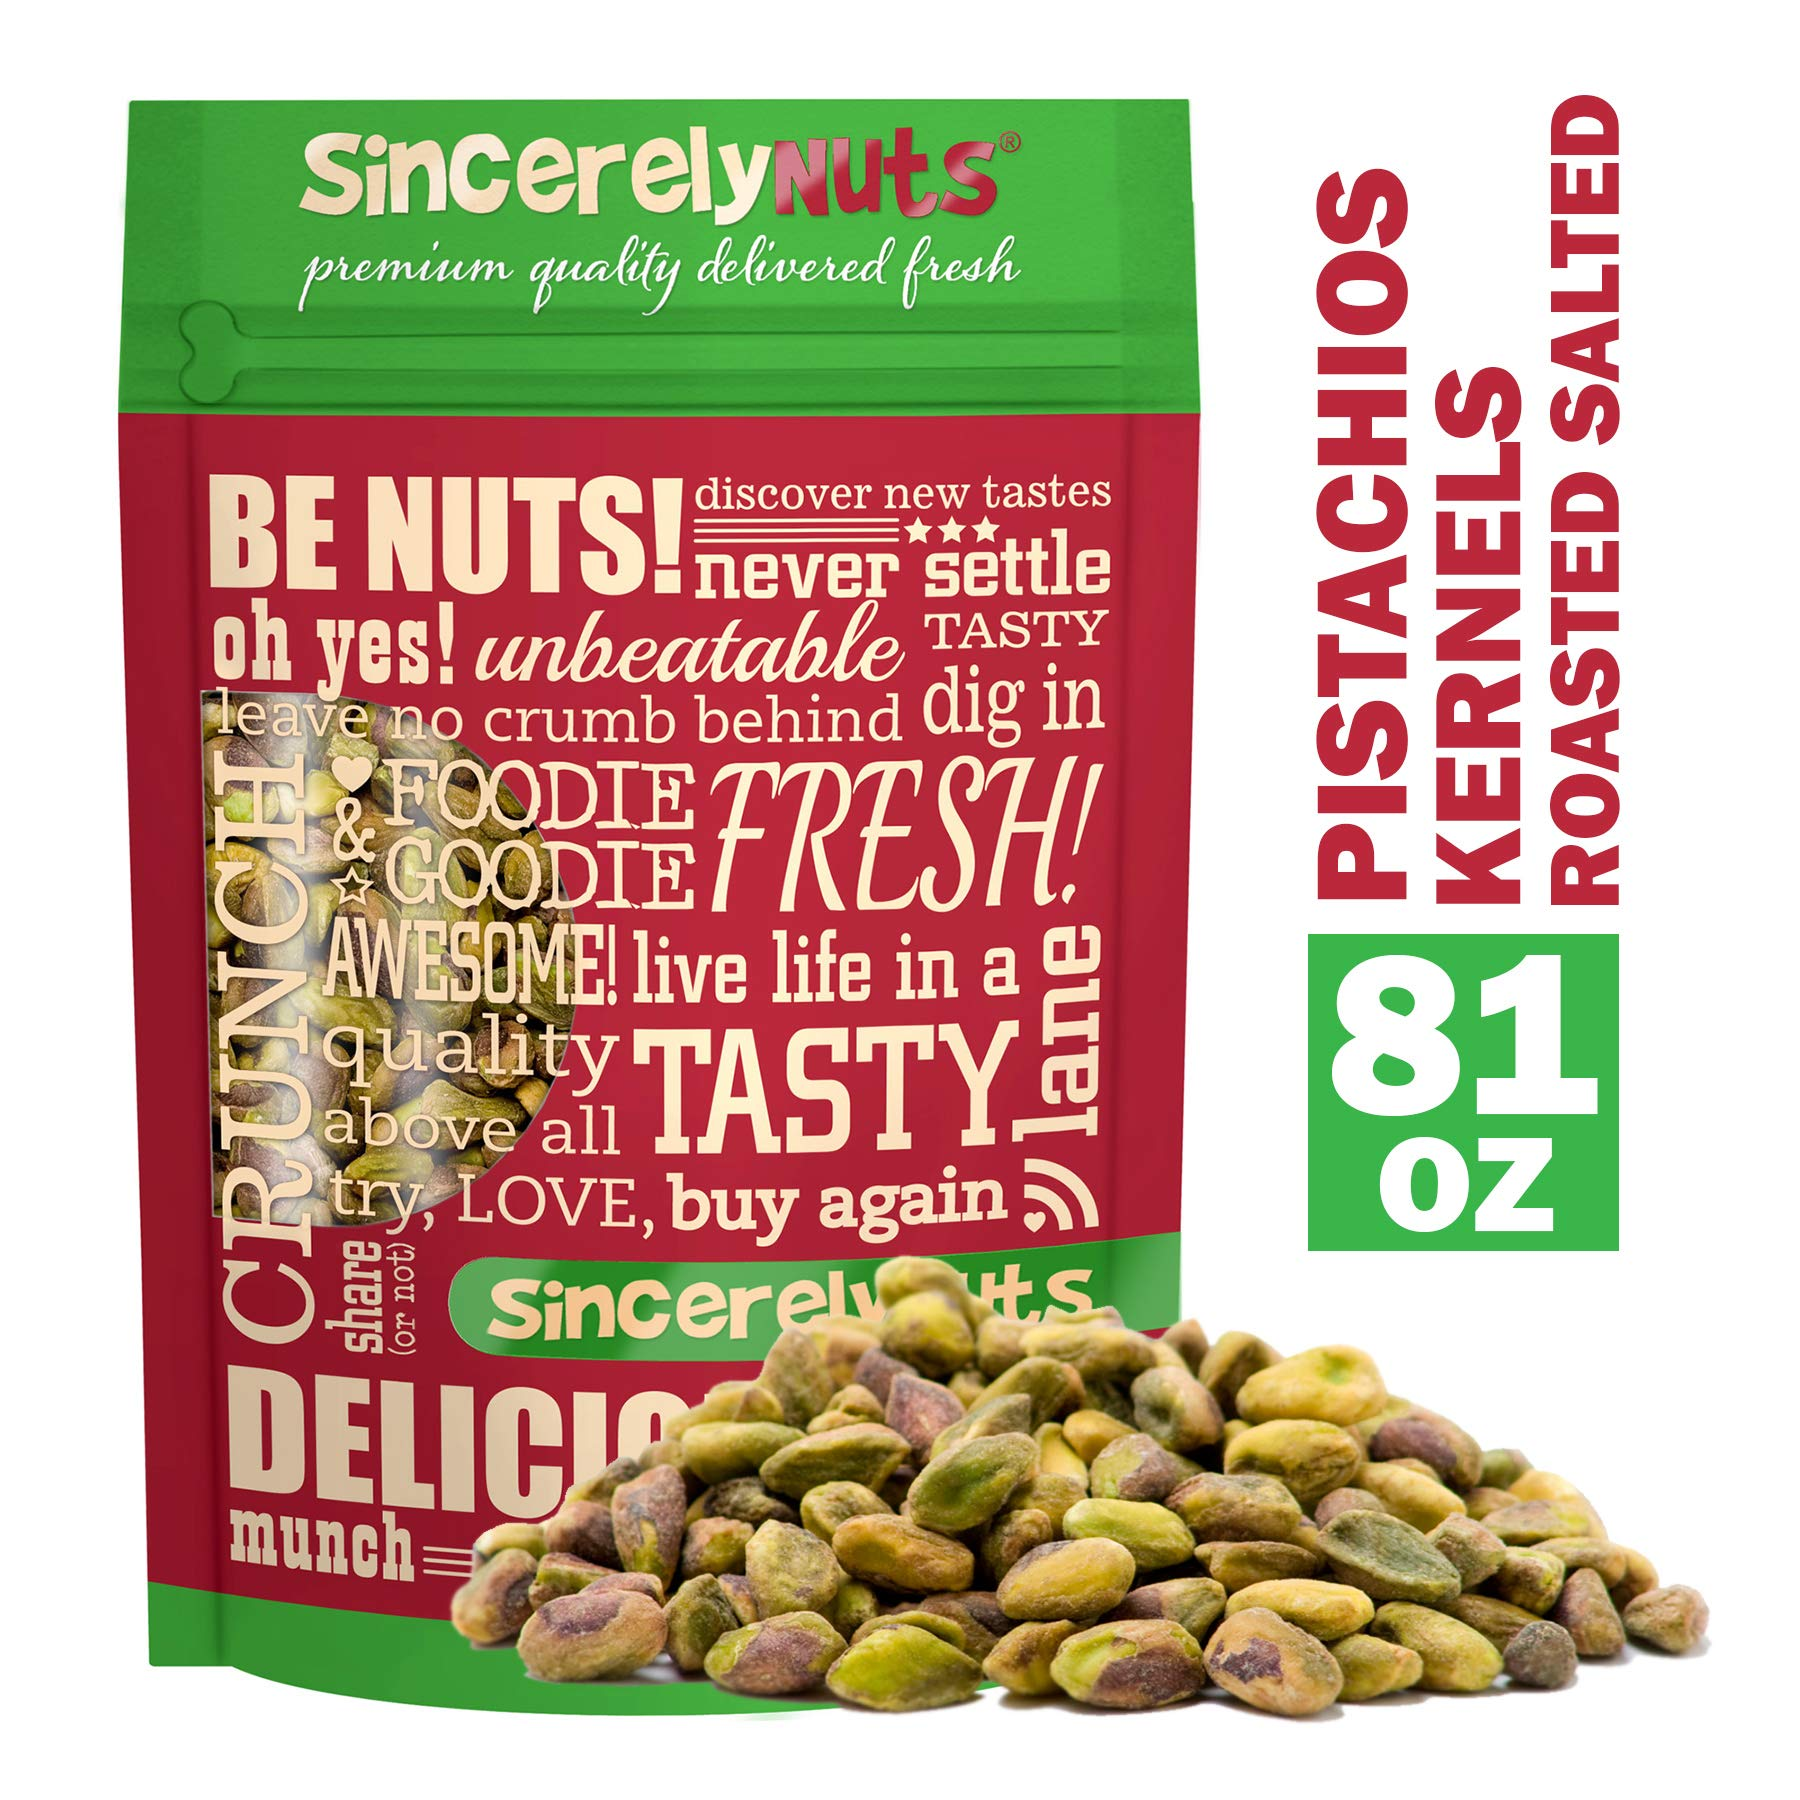 Sincerely Nuts Pistachios Roasted and Salted Kernels (Meats) No Shell - 5 Lb. Bag -   Healthy Snack Food   Great for Cooking   Source of Fiber & Protein   Gourmet Flavor   Vegan, Kosher & Gluten Free